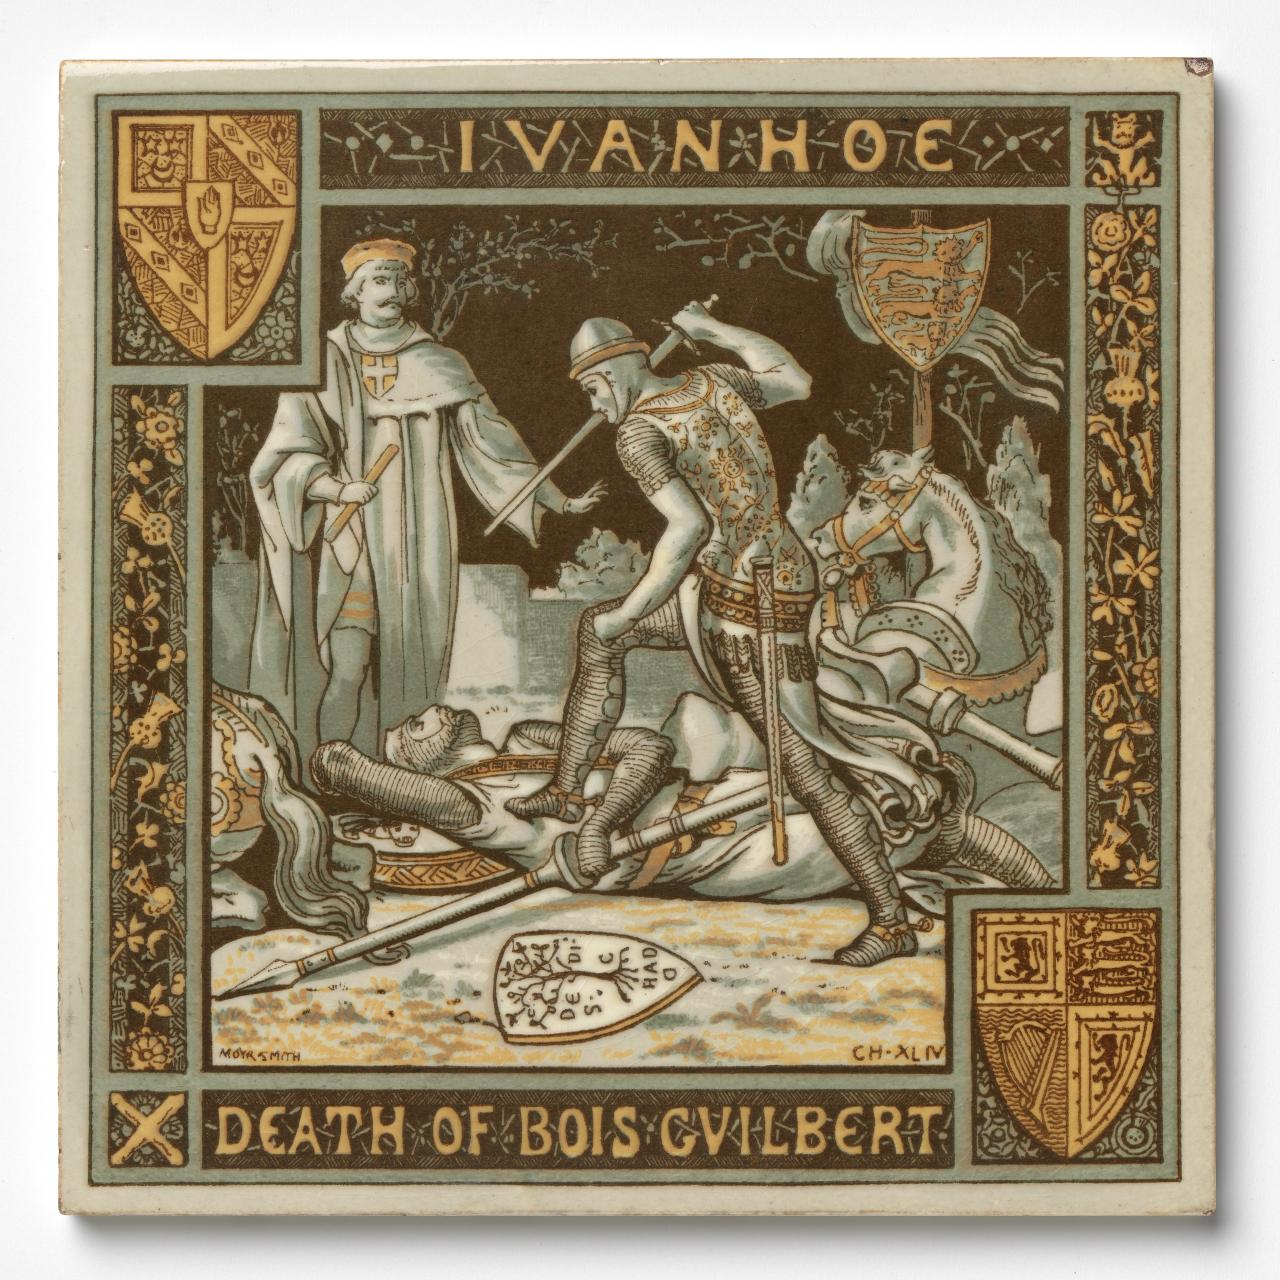 Ivanhoe: The death of Bois Gilbert, ch XLIV, tile